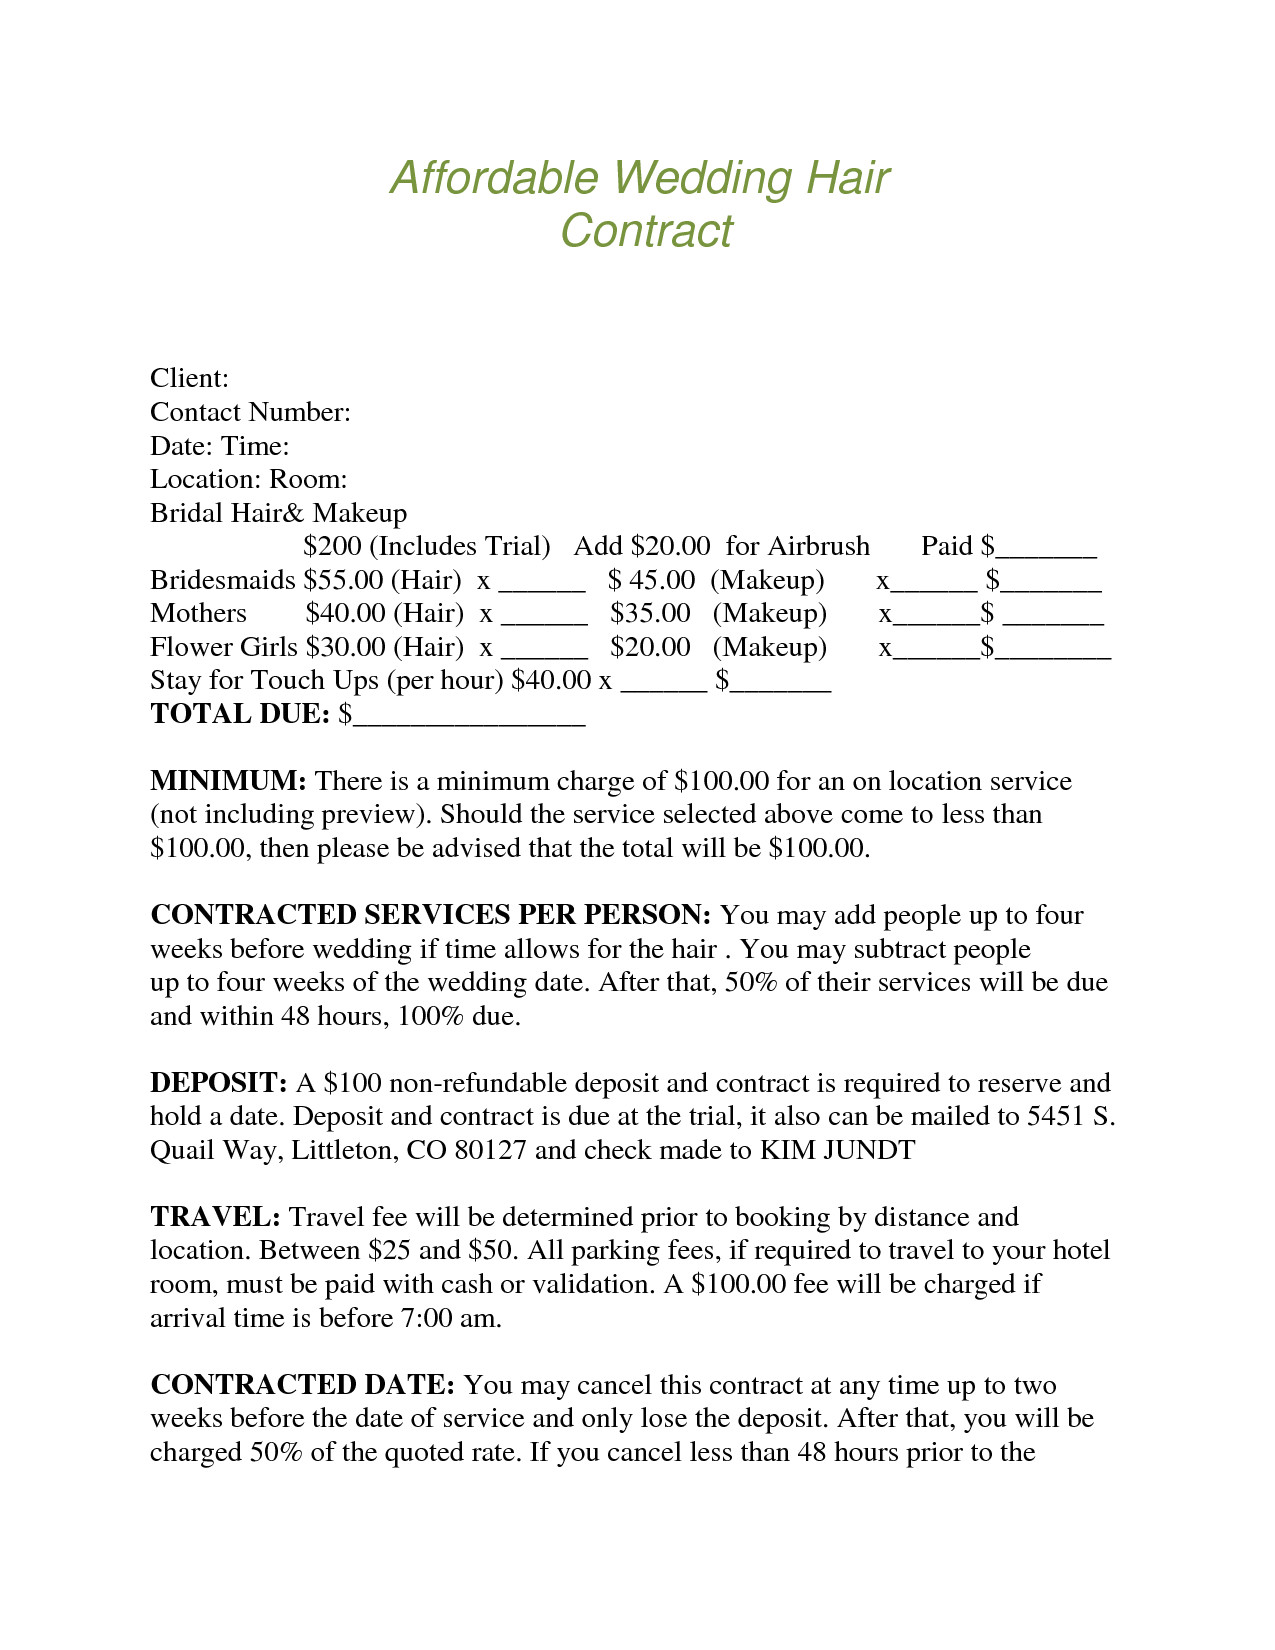 Bridal Contract Template for Hair Bridalhaircotract Affordable Wedding Hair Contract